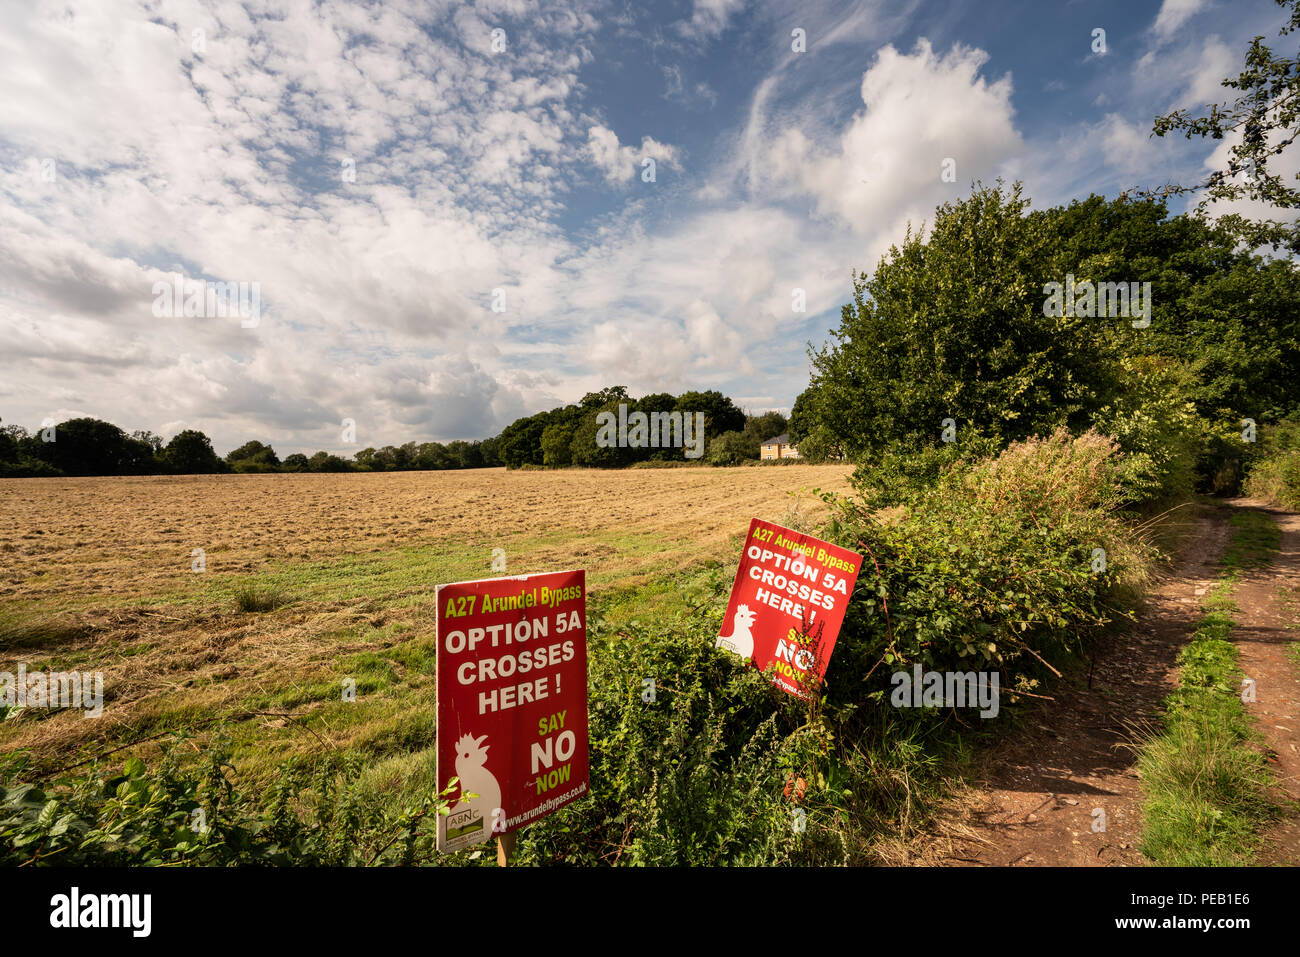 Binsted Woods, Arundel, West Sussex: Option 5A Arundel Bypass - a controversial dual carriageway that will cut across ancient pastures and woodland. - Stock Image